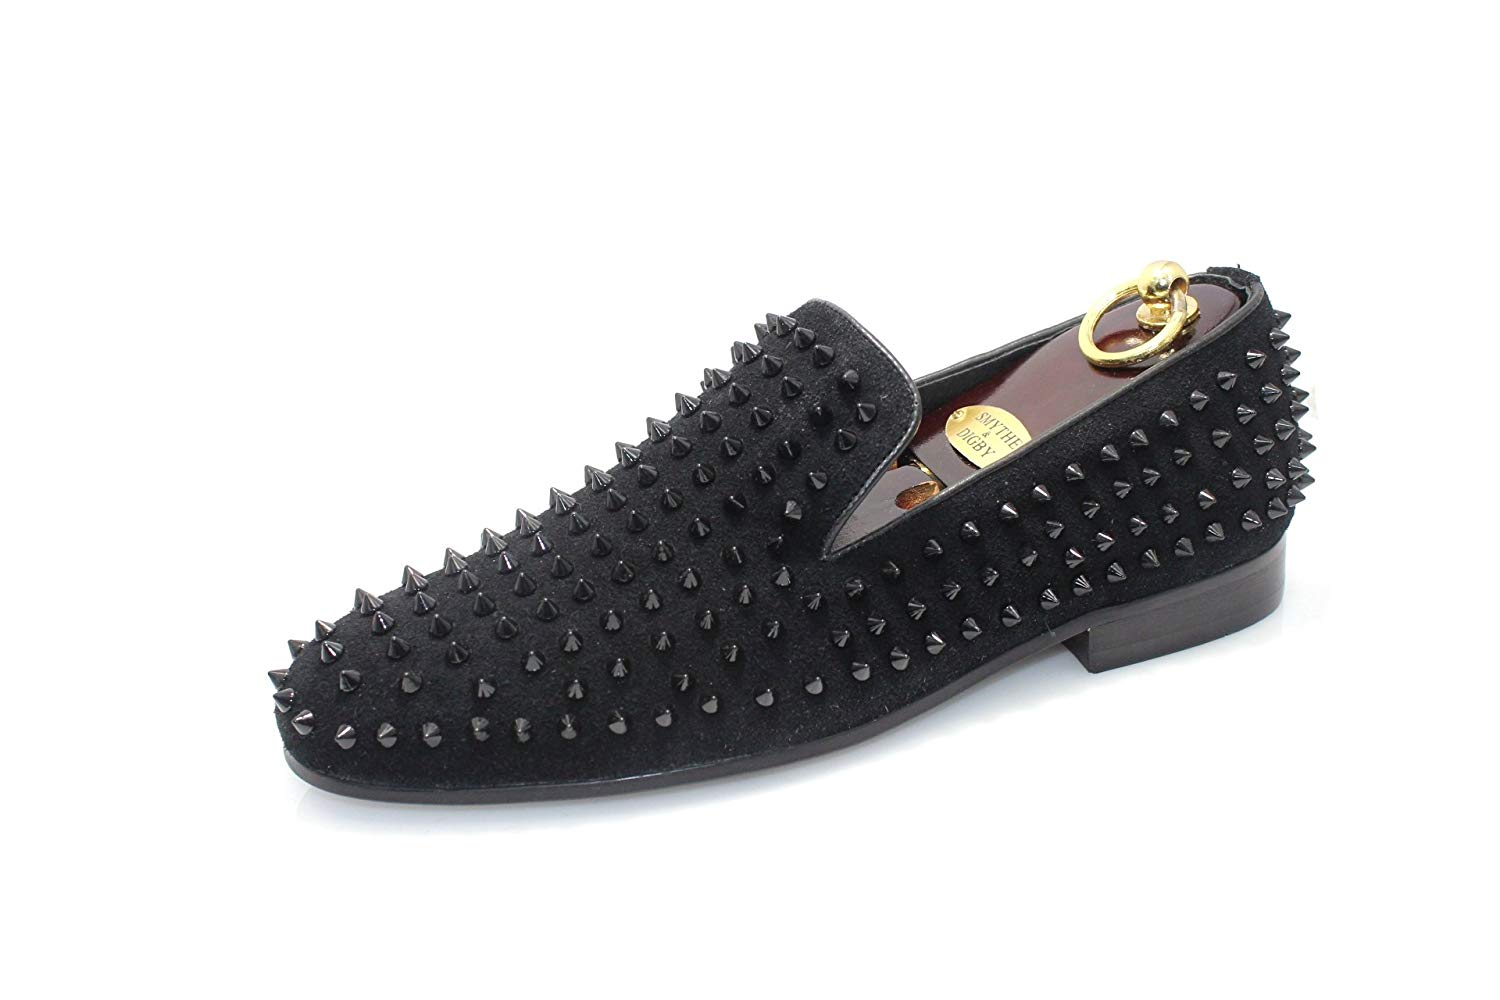 afe4e97319d6 Get Quotations · SMYTHE   DIGBY Men s Spiked Studded Black Leather Loafers